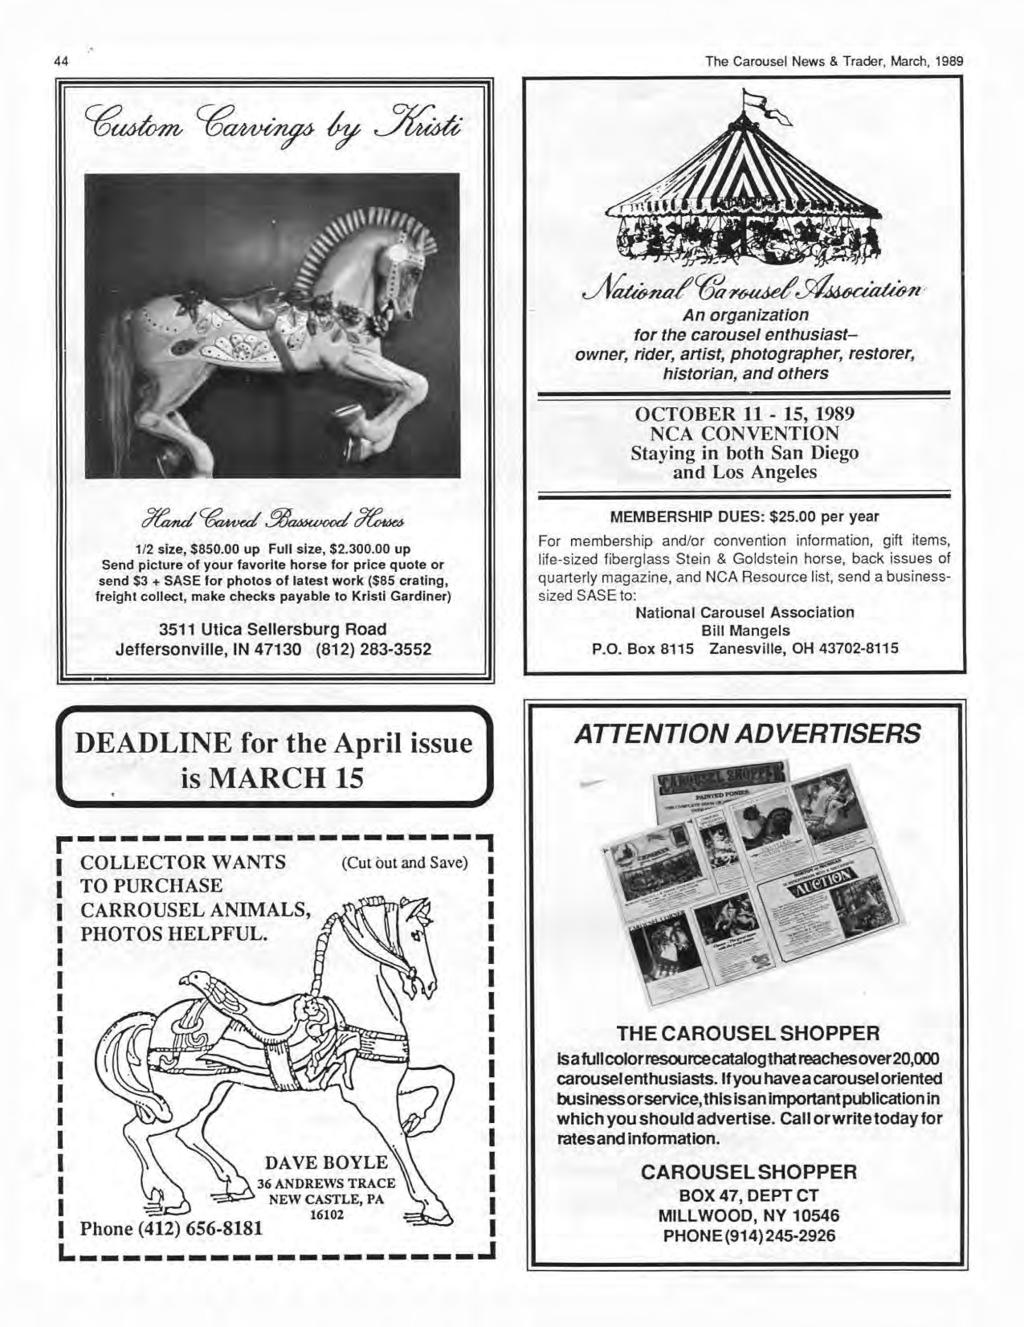 44 The Carousel News & Trader, March, 1989 JYtWMzo/~~sf/~l ' An organization for the carousel enthusiastowner, rider, artist, photographer, restorer, historian, and others OCTOBER 11-15, 1989 NCA